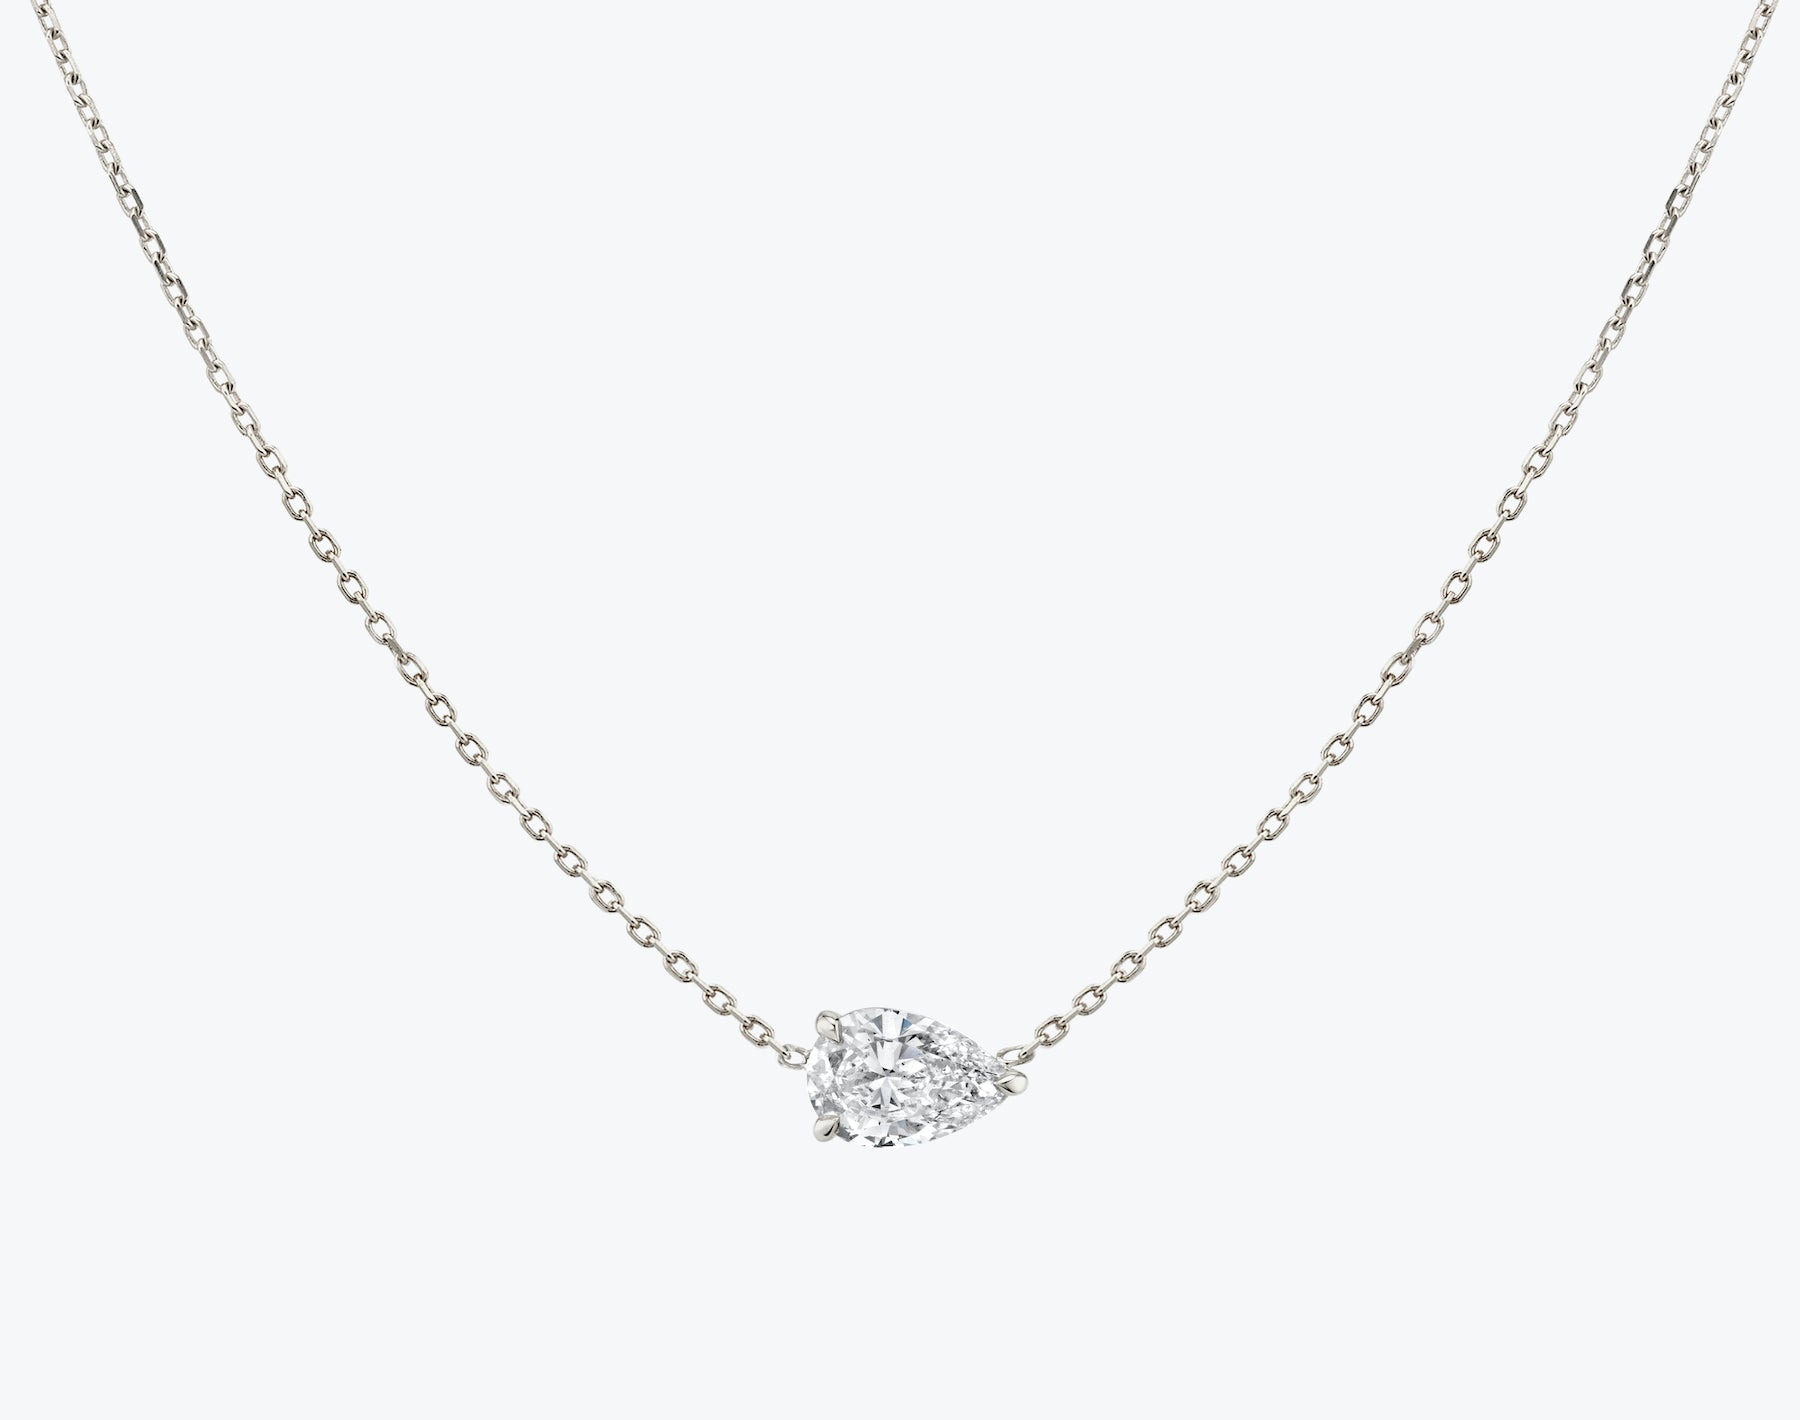 Vrai 14K solid gold solitaire pear diamond necklace 1ct minimalist delicate, 14K White Gold